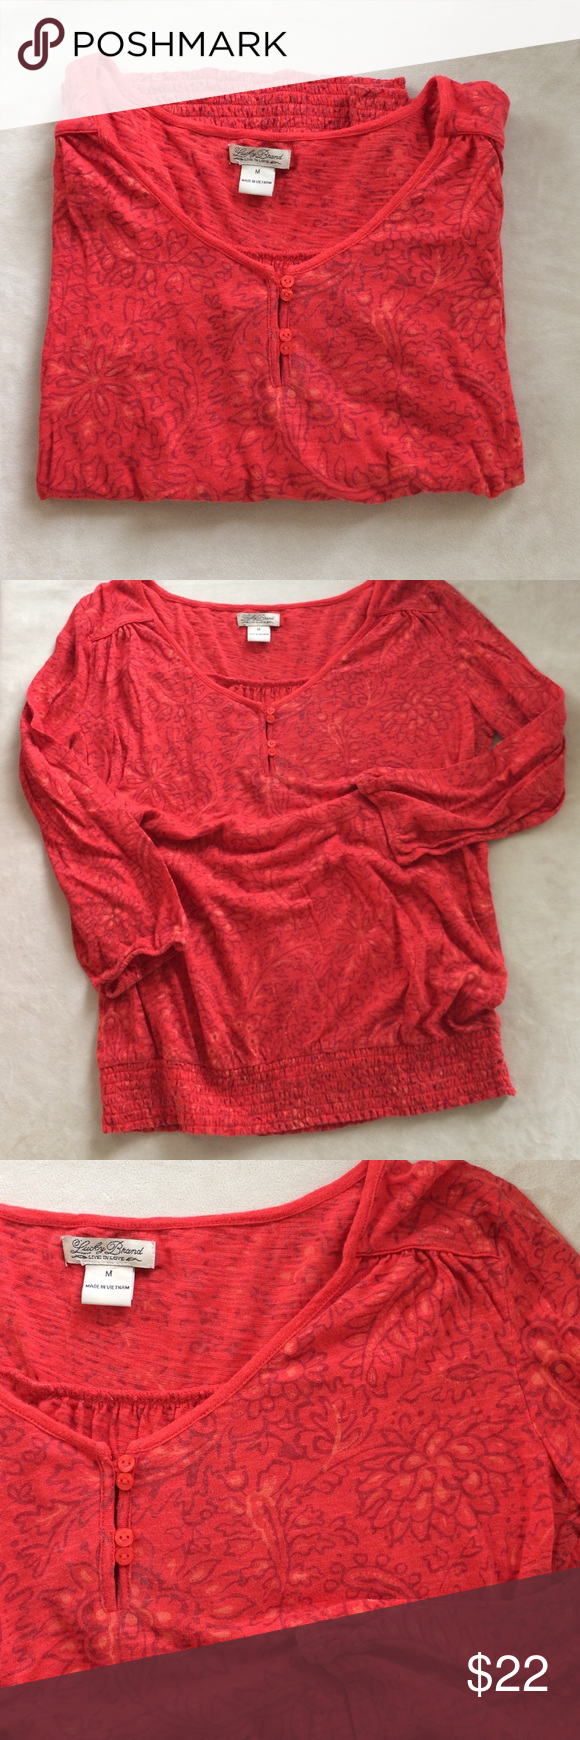 "Lucky Brand top Cute top in dark coral with floral design.  Soft cotton/modal blend.  Soft and comfortable. Great condition.  No snags, holes Etc.  20"" across underarms.  24"" from shoulder to hem.  3/4 sleeve. Lucky Brand Tops"